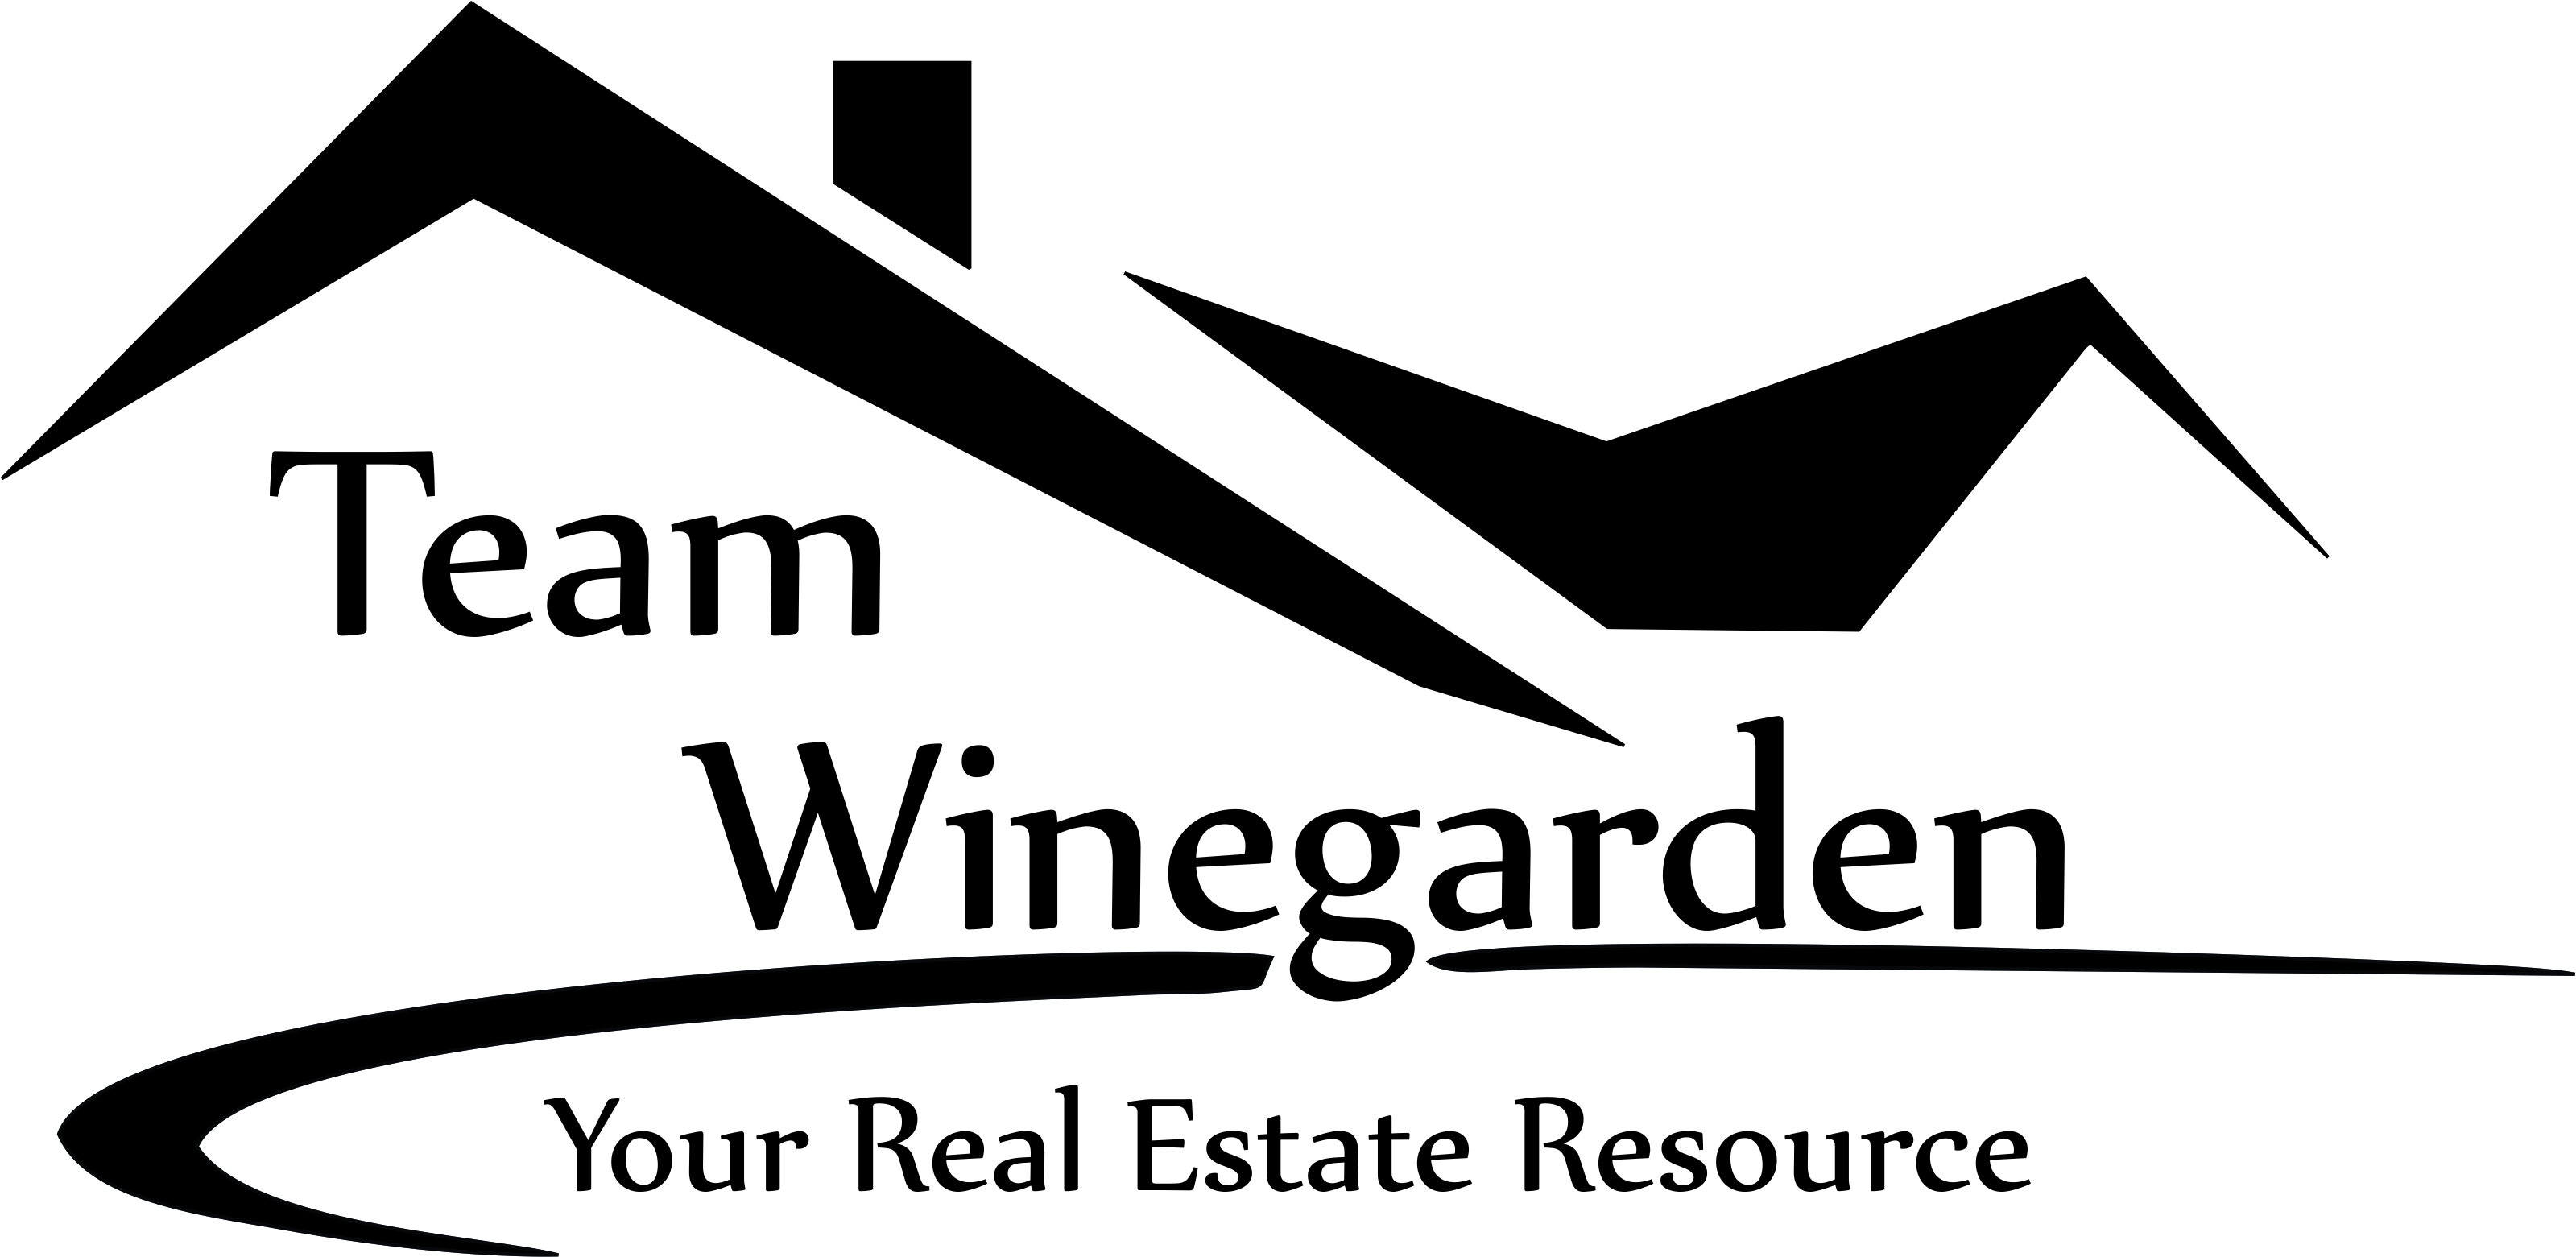 Winegarden of National Realty Guild logo